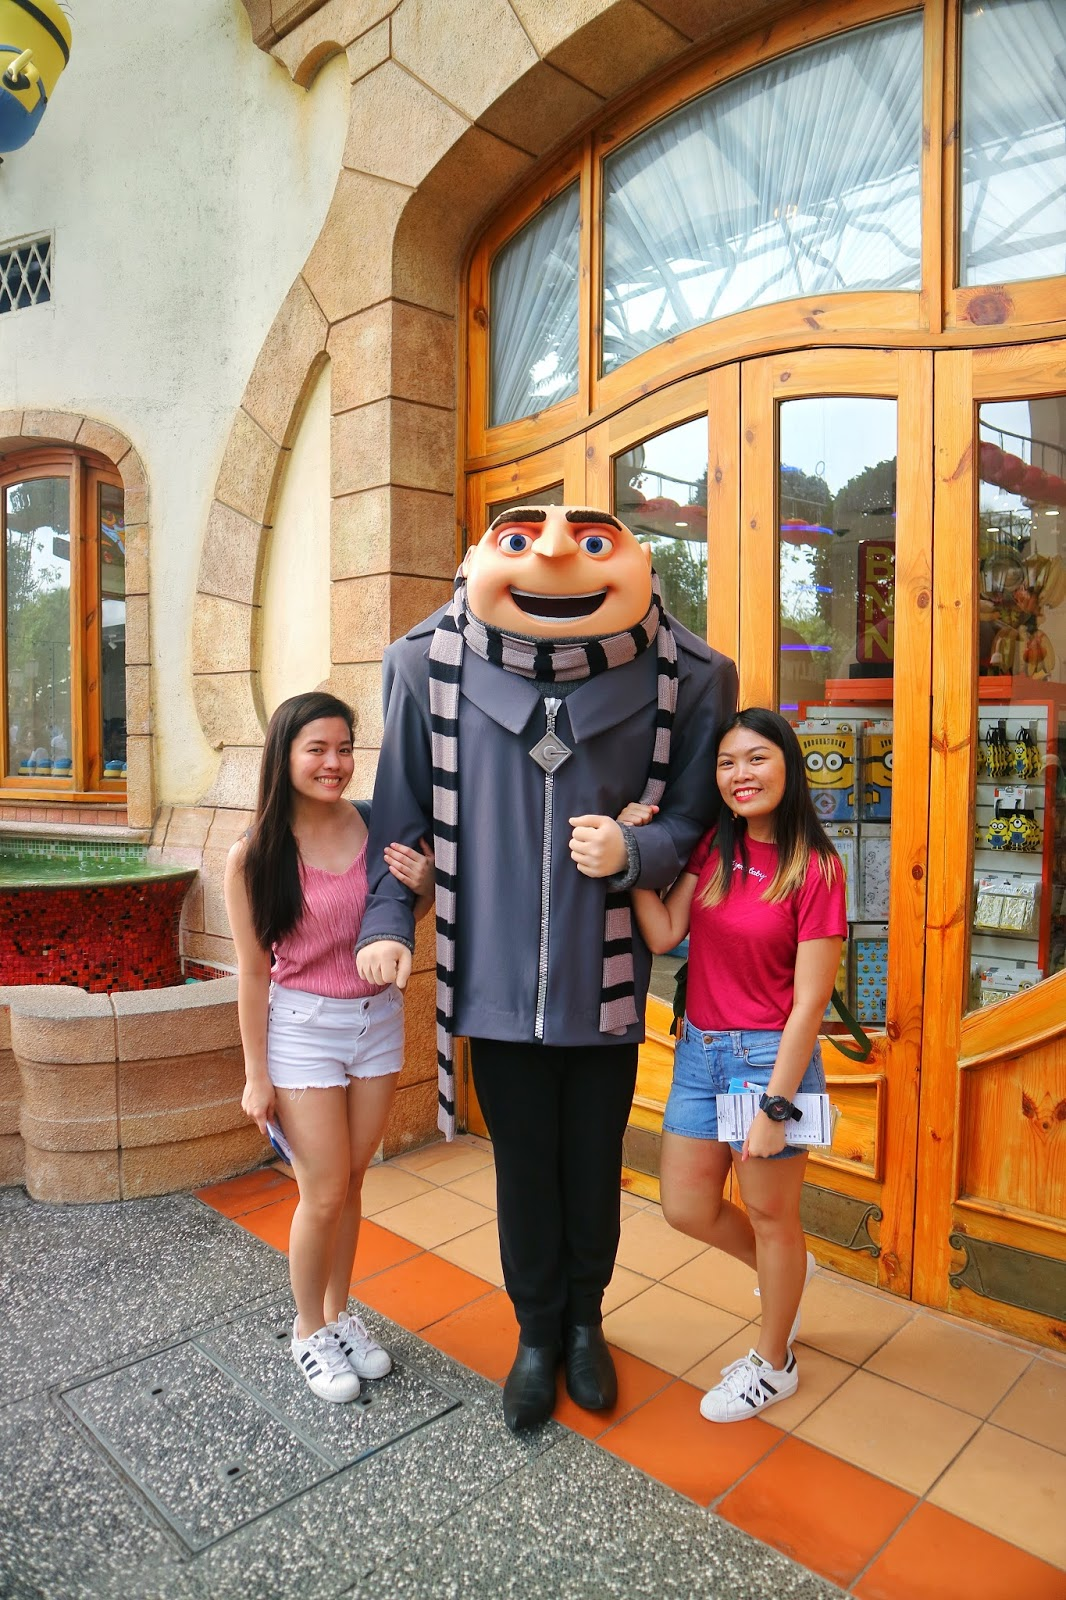 A decent pic with Gru! Lol - Universal Studios Singapore